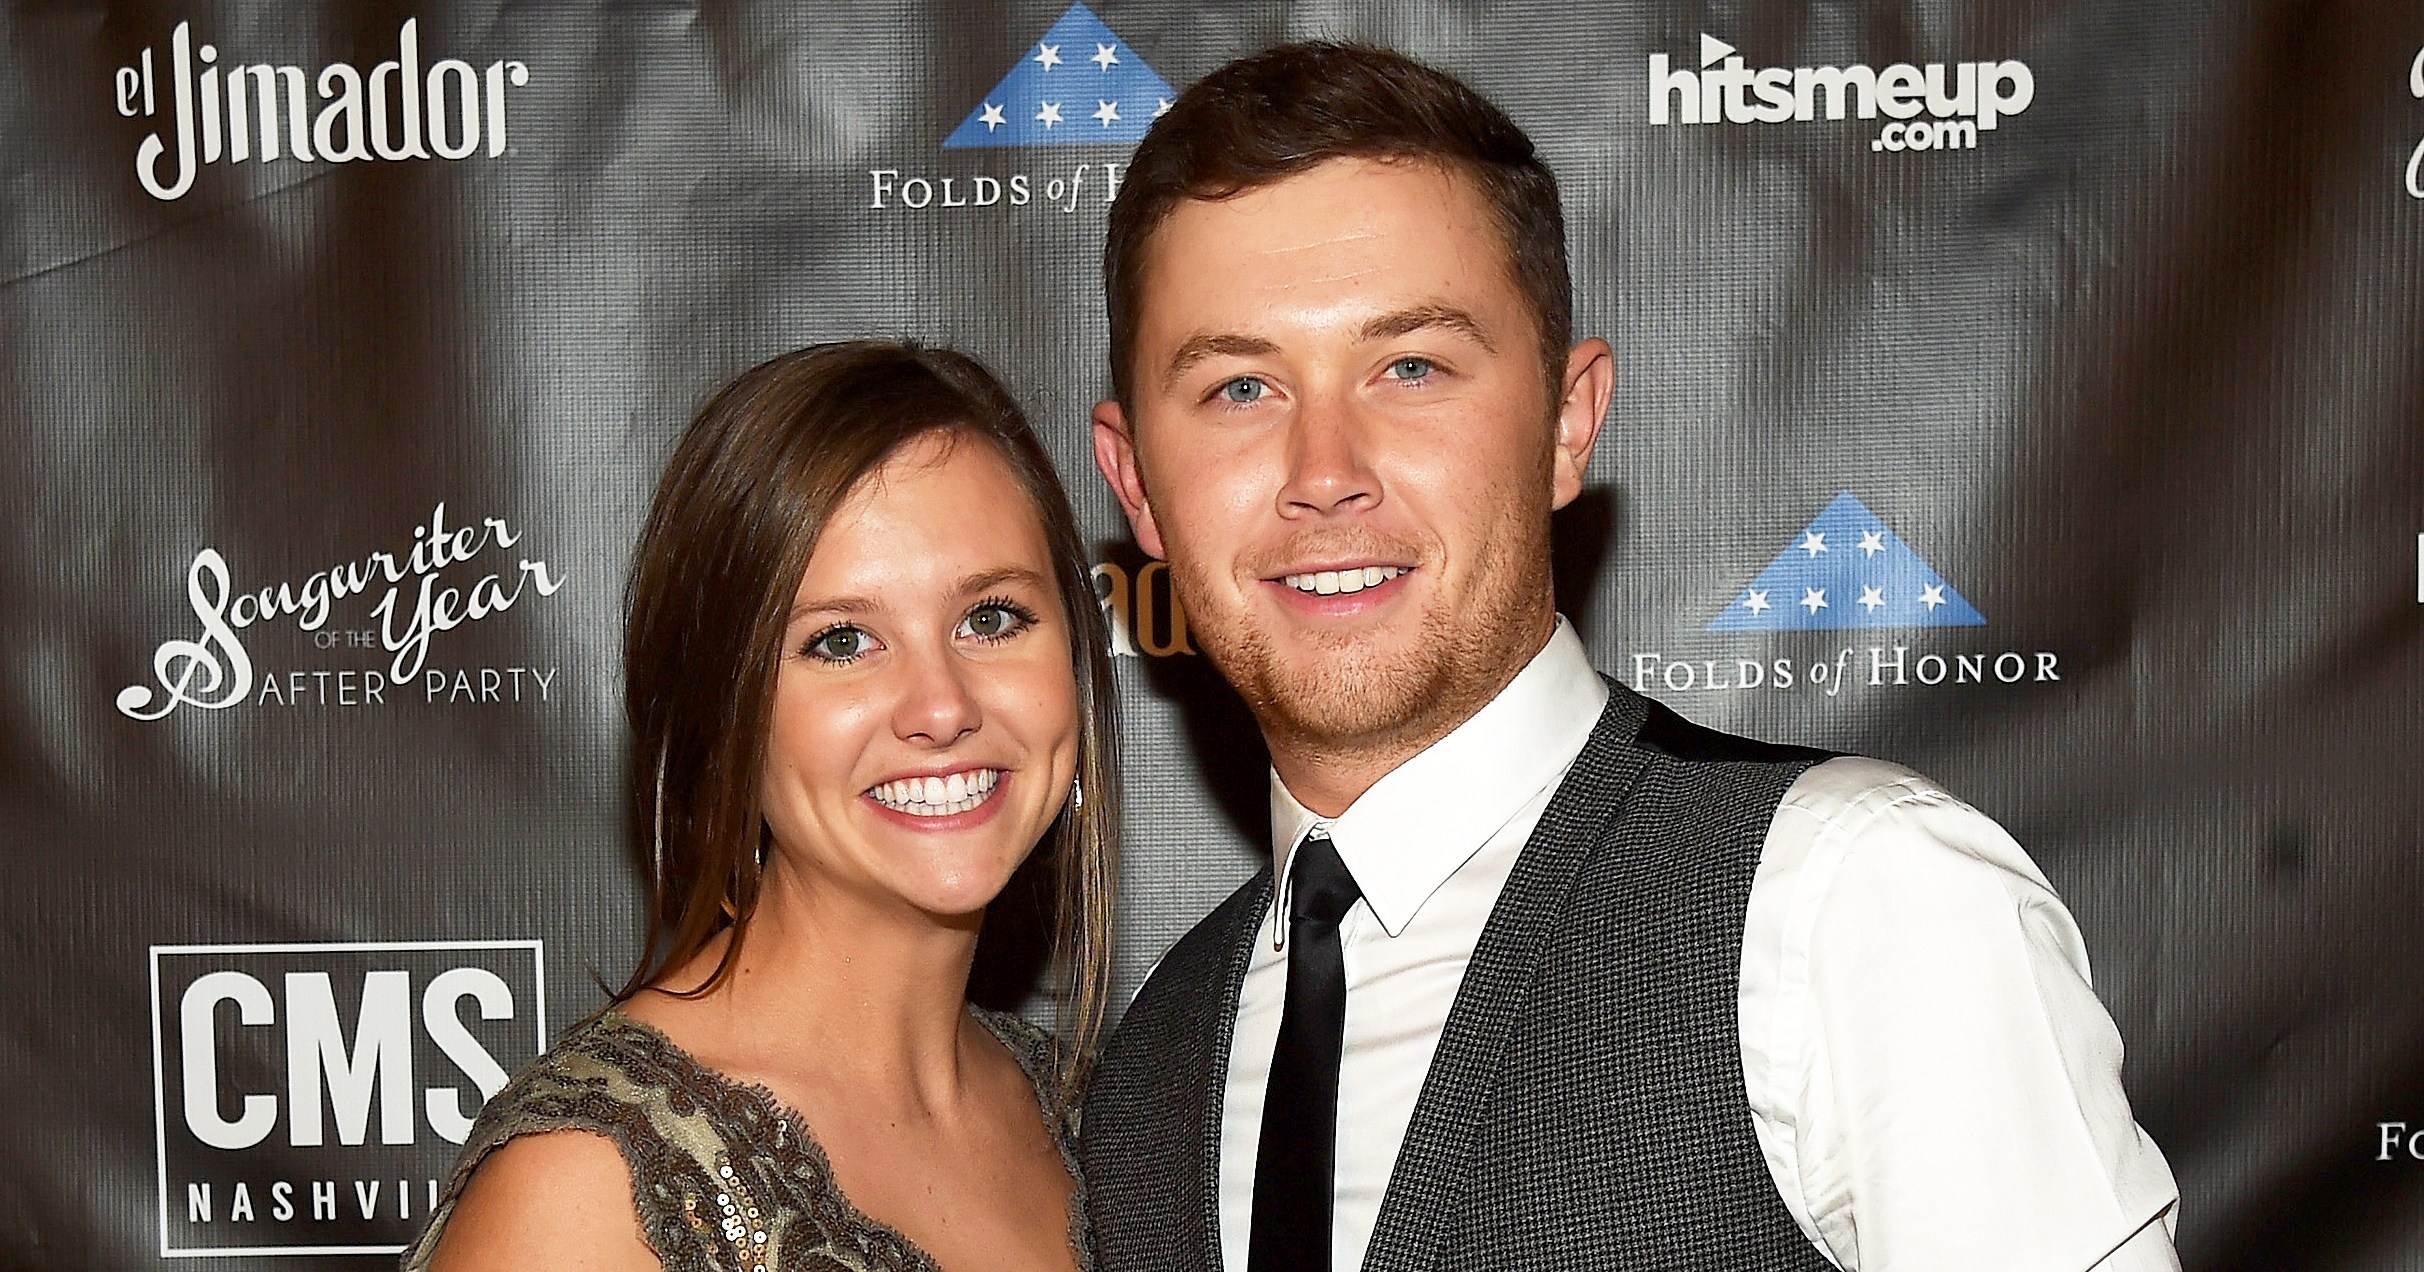 Who is scotty mccreery dating in Sydney